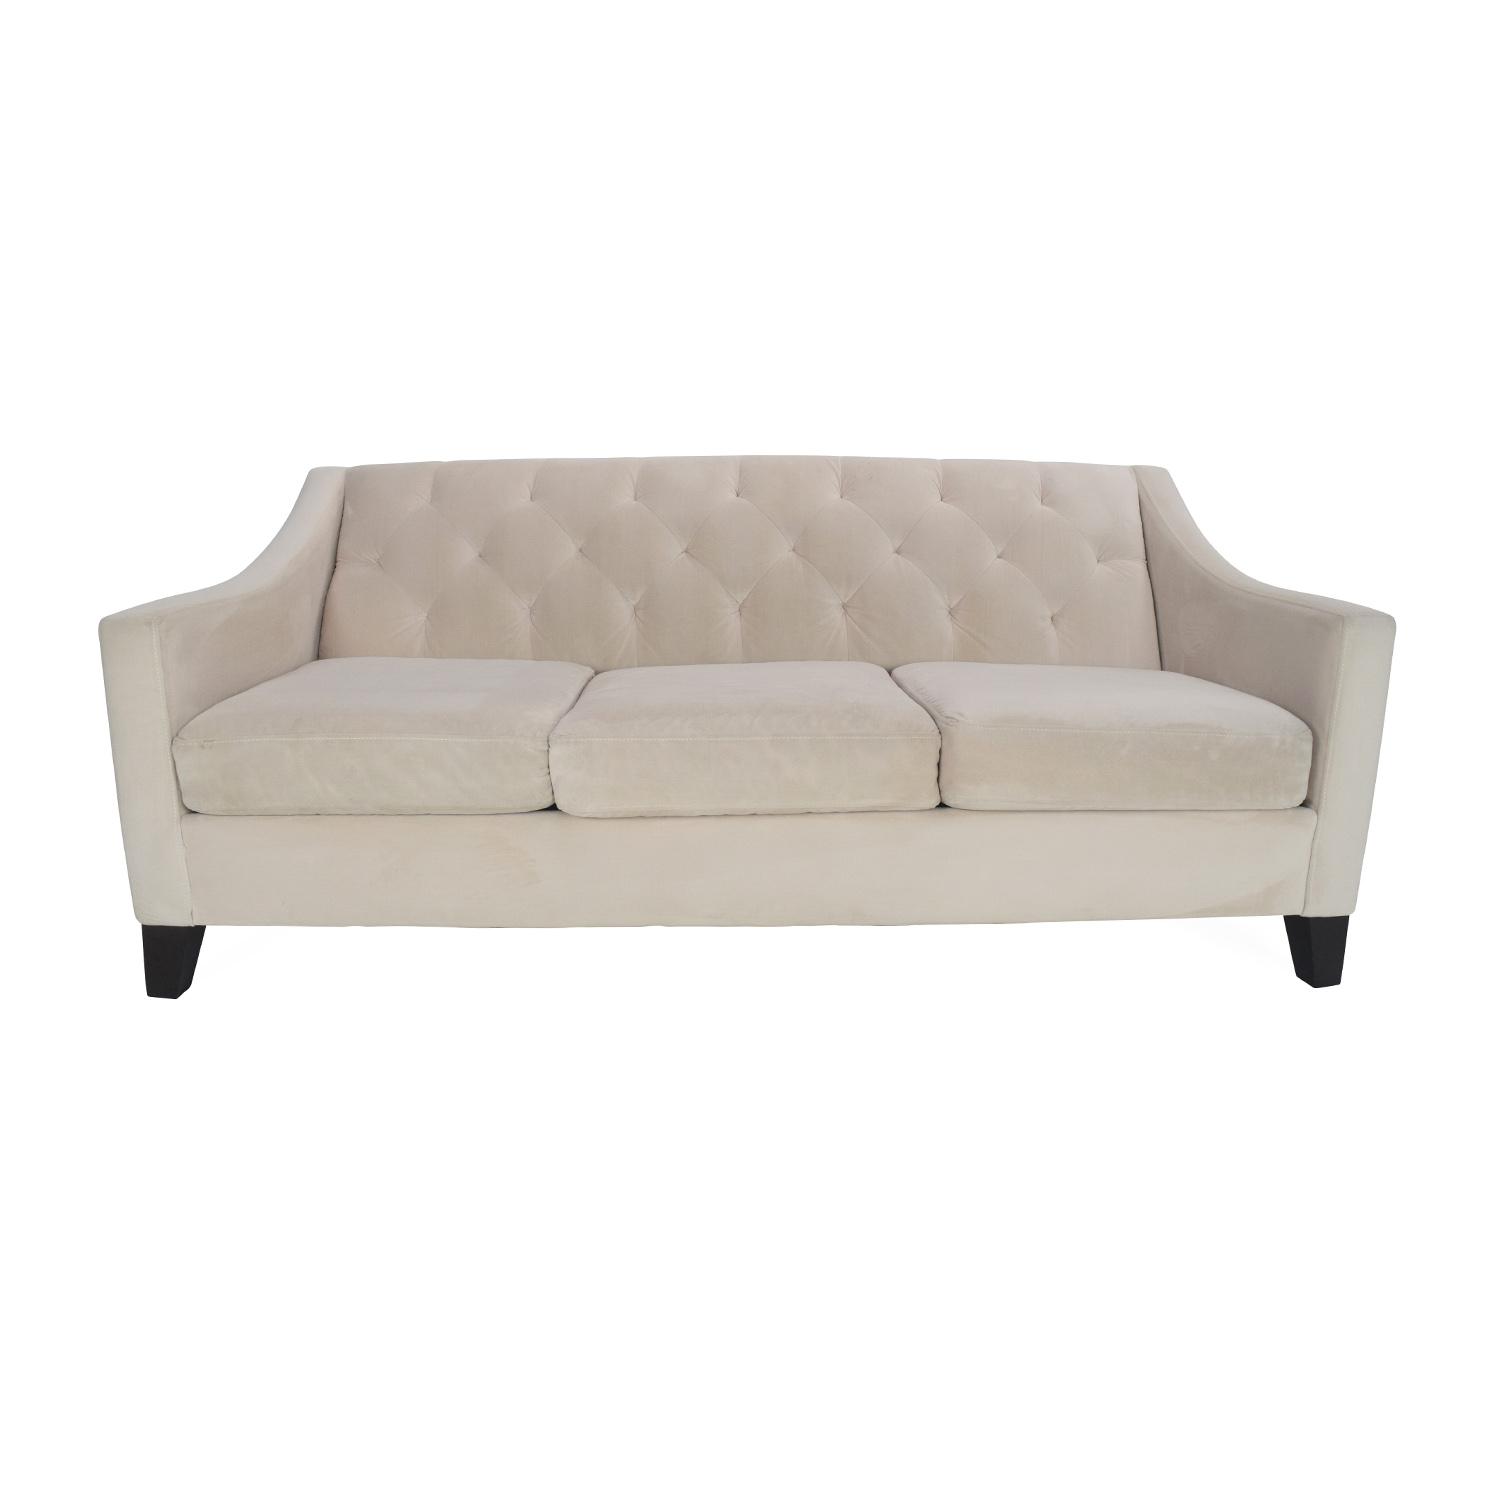 Charmant Buy Macys Chloe Tufted Sofa Max Home Furniture ...